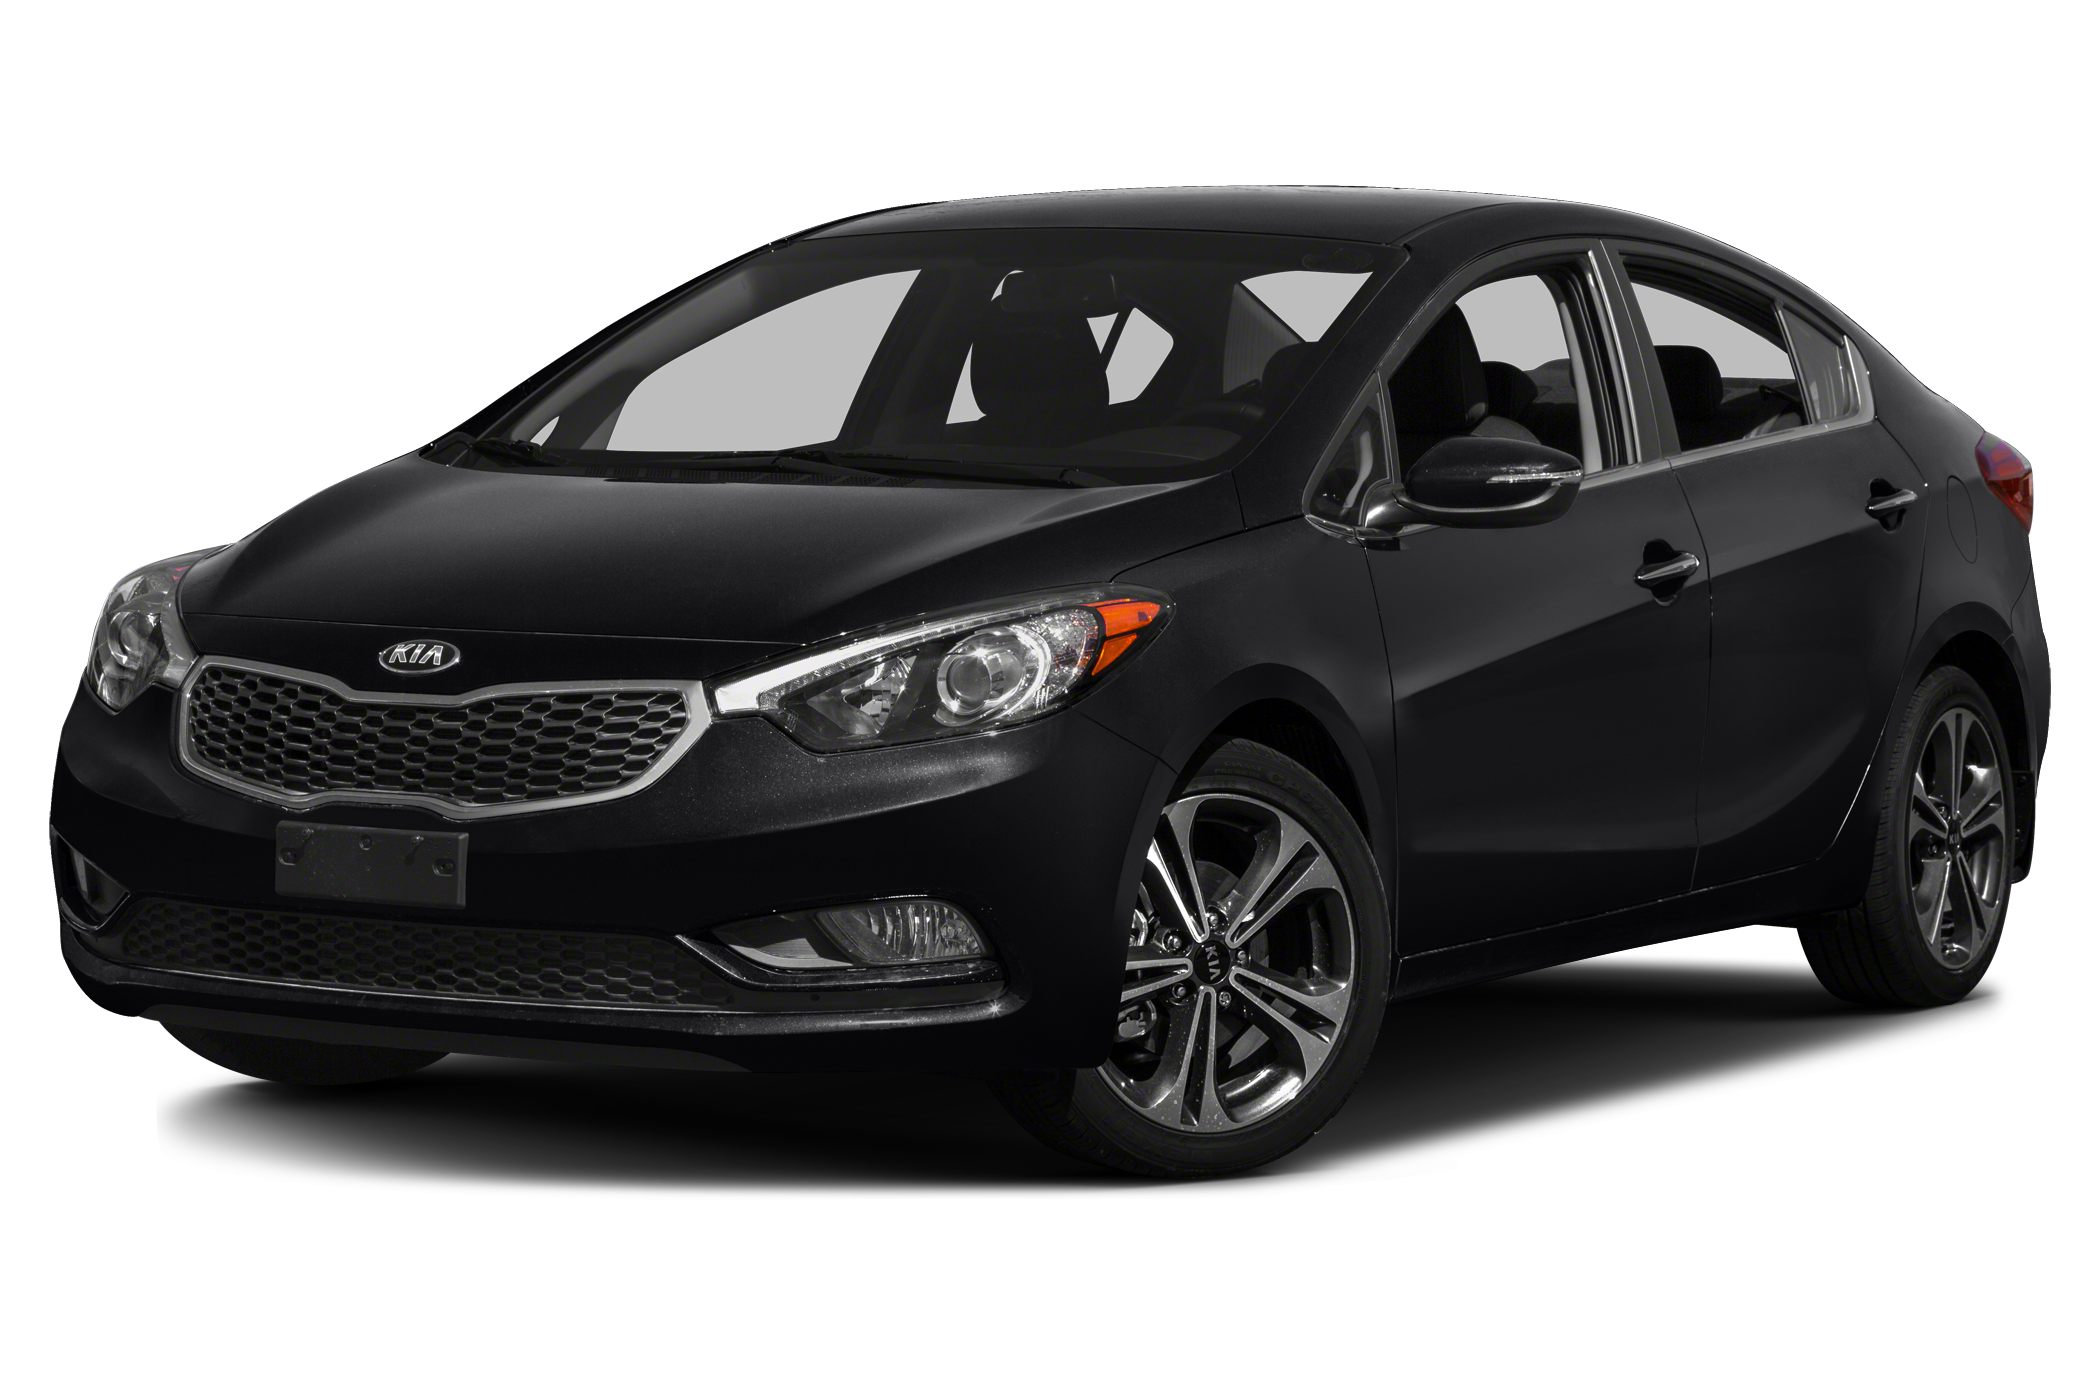 2015 Kia Forte LX Black CARFAX One-Owner Clean CARFAX Recent Arrival Odometer is 2838 miles bel